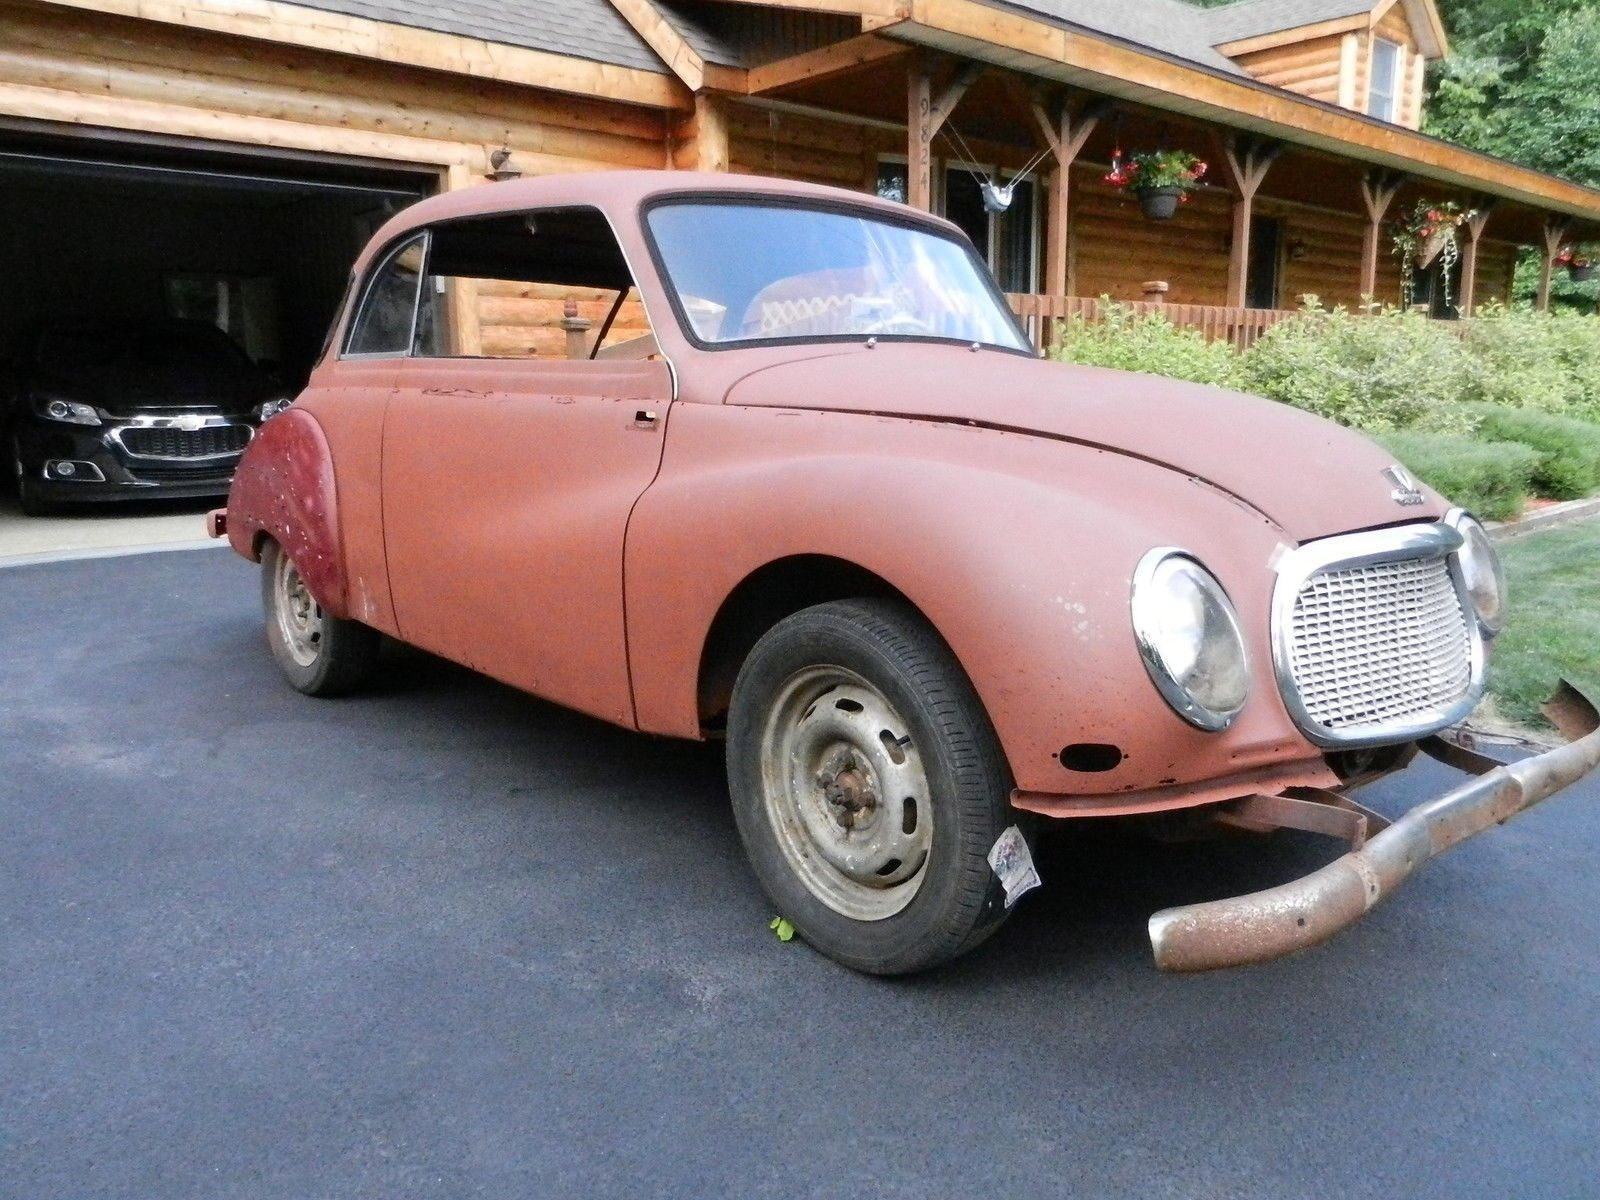 1957 DKW Audii Suicide doors | Project cars for sale | Pinterest ...